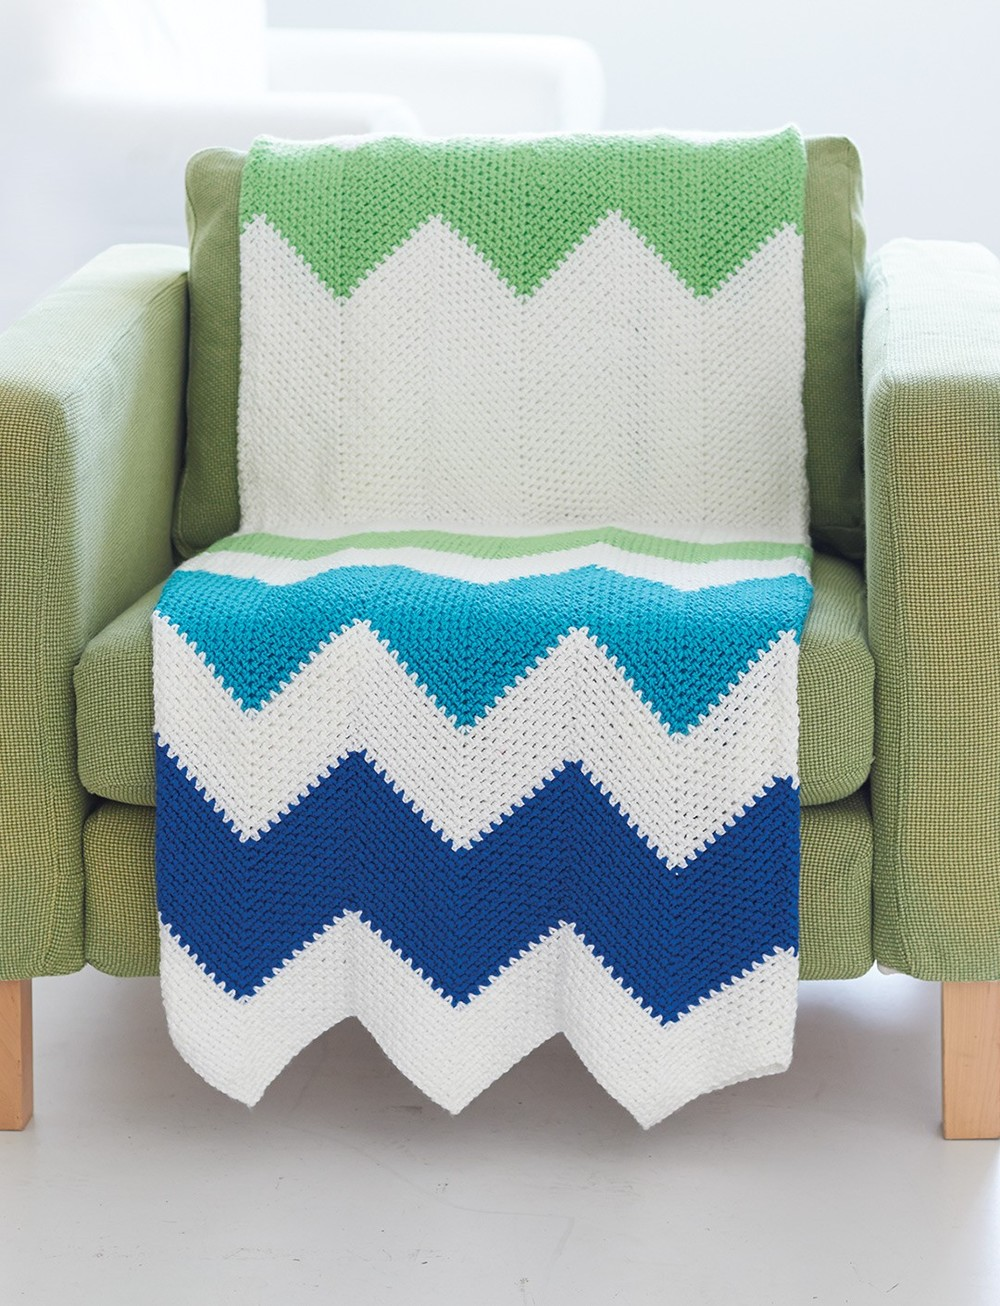 Zigzag Crochet Pattern Magnificent Inspiration